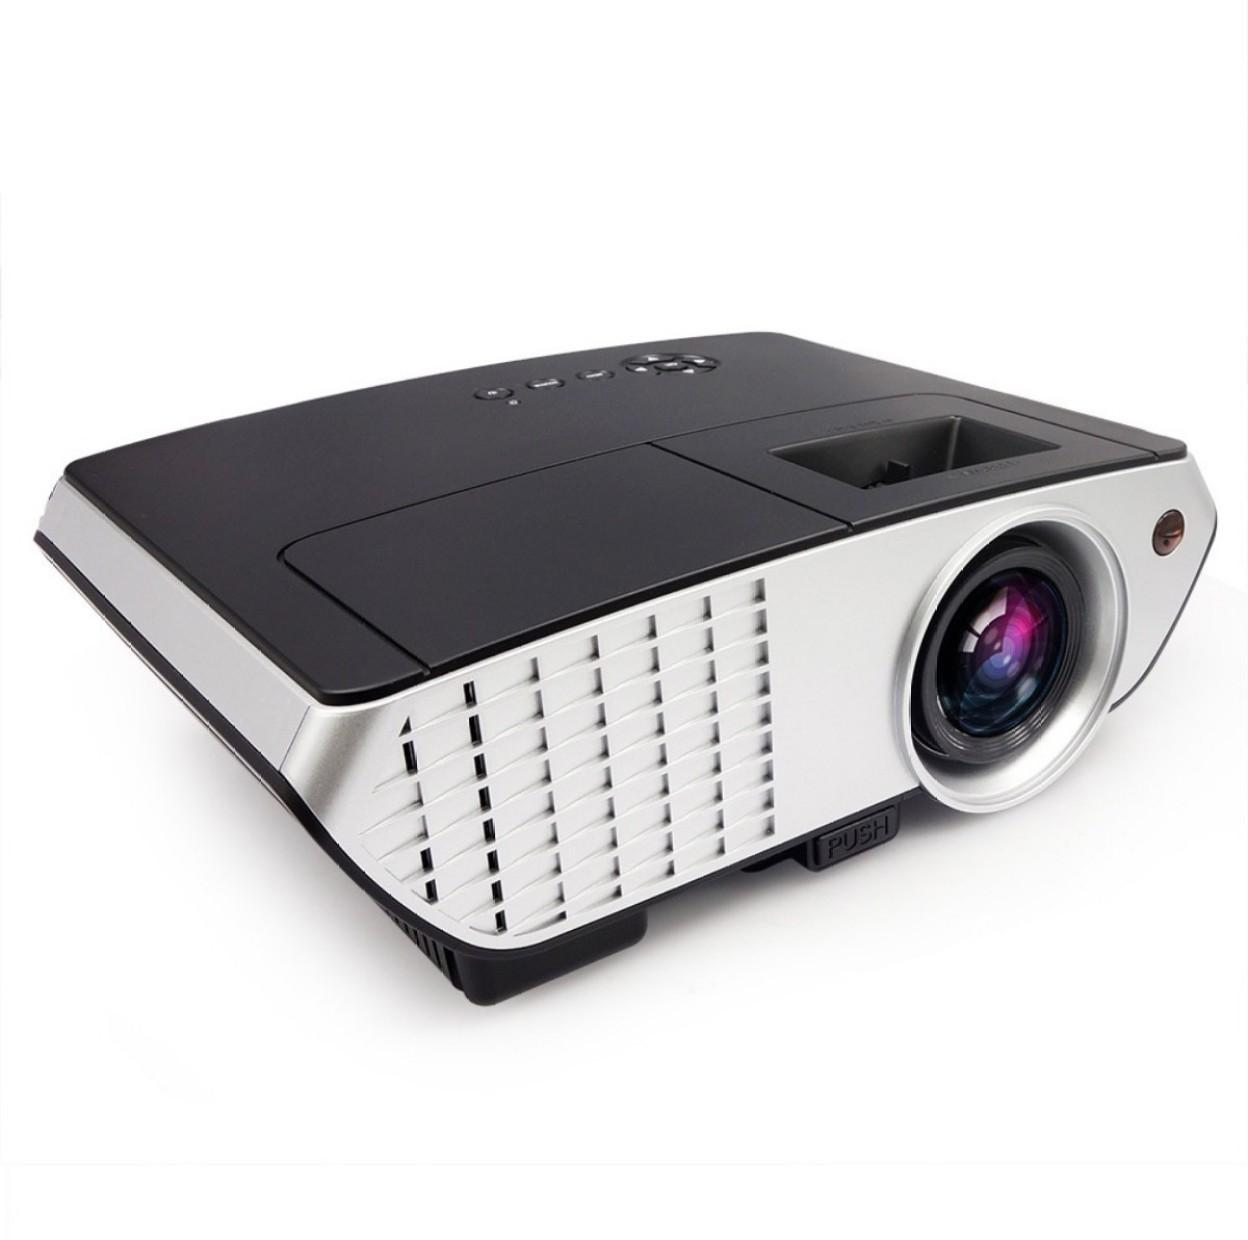 Play 3000 Lumens Led Projector Full Hd Data Show Tv Video Games Home Proyektor Unic Uc40 Mini Cinema Theater 1280x1080p Price In India Coupons And Specifications